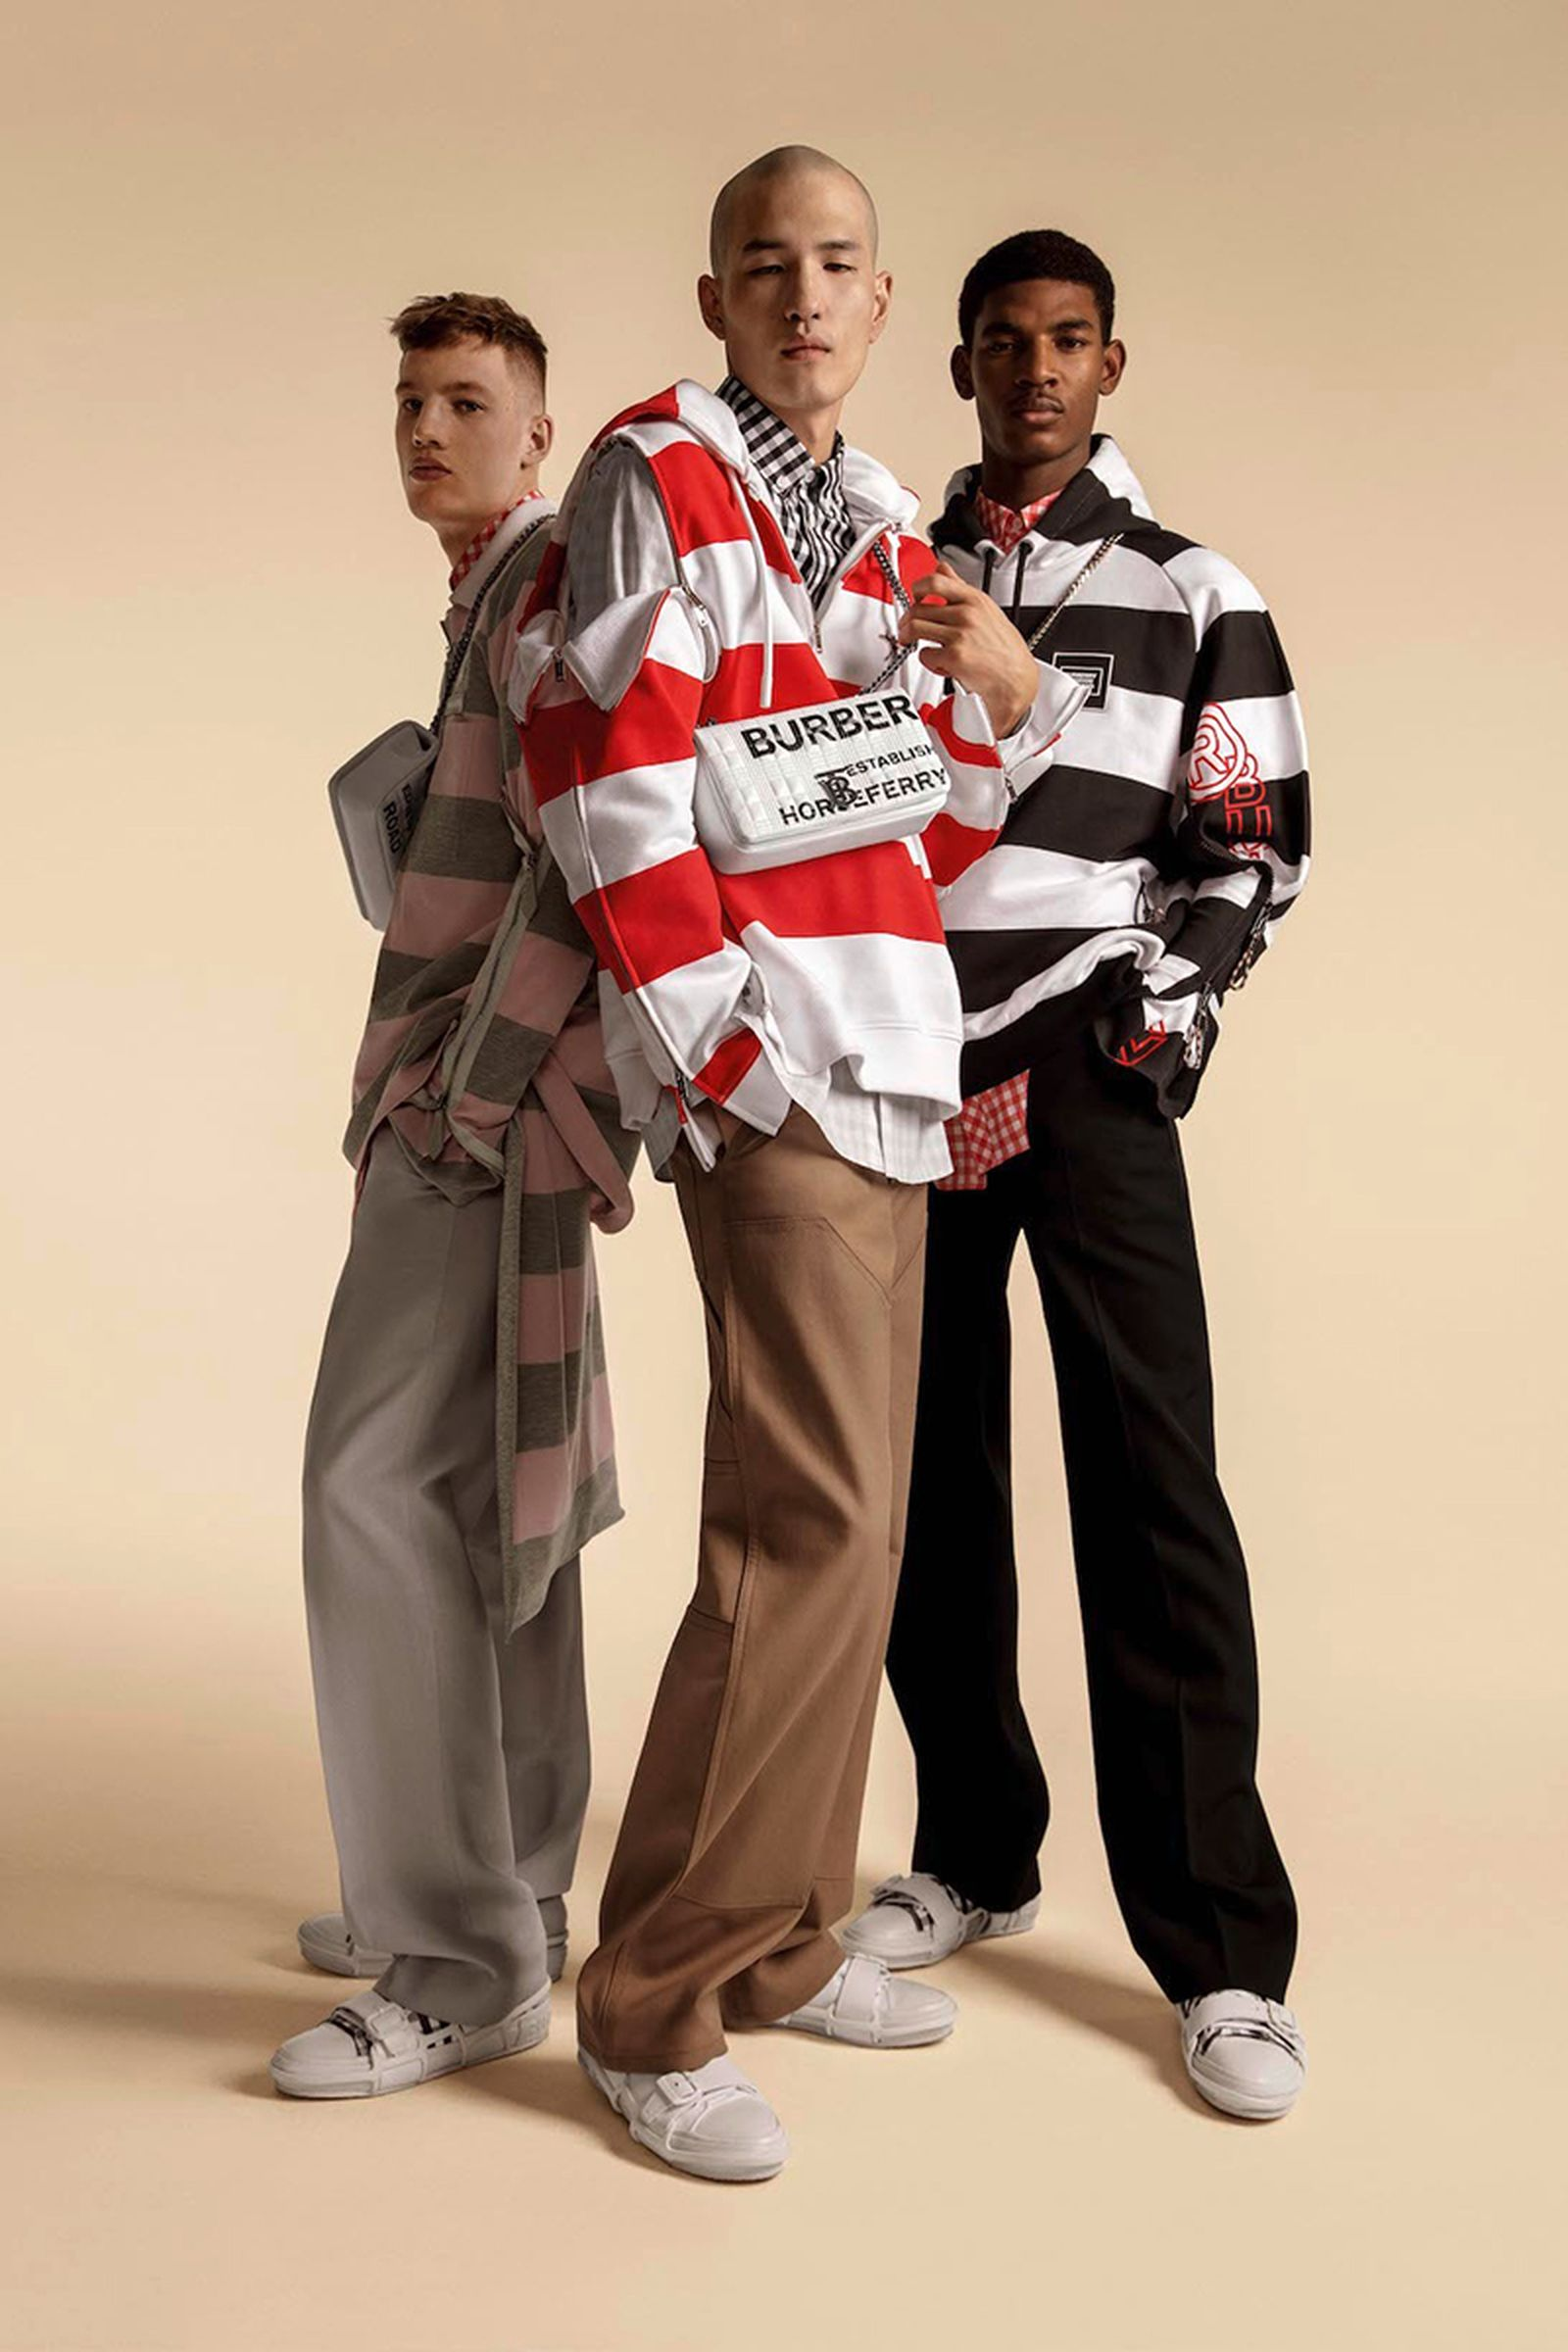 burberry-ss20-campaign-01